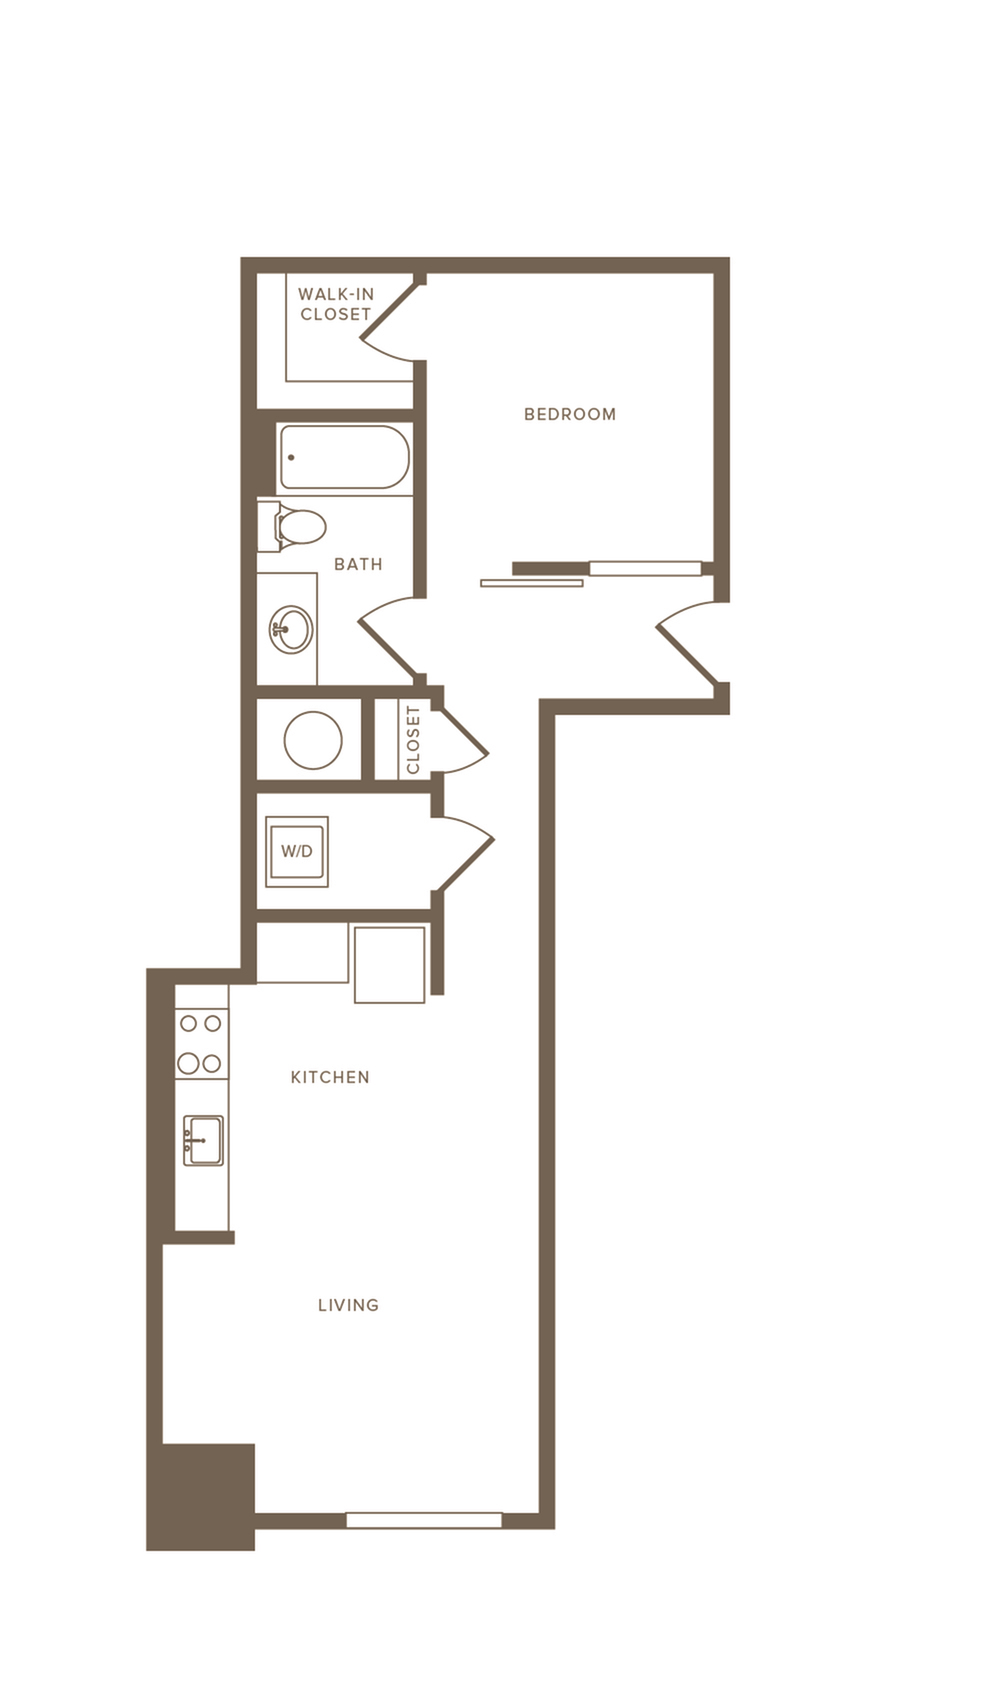 644 square foot one bedroom one bath apartment floorplan image